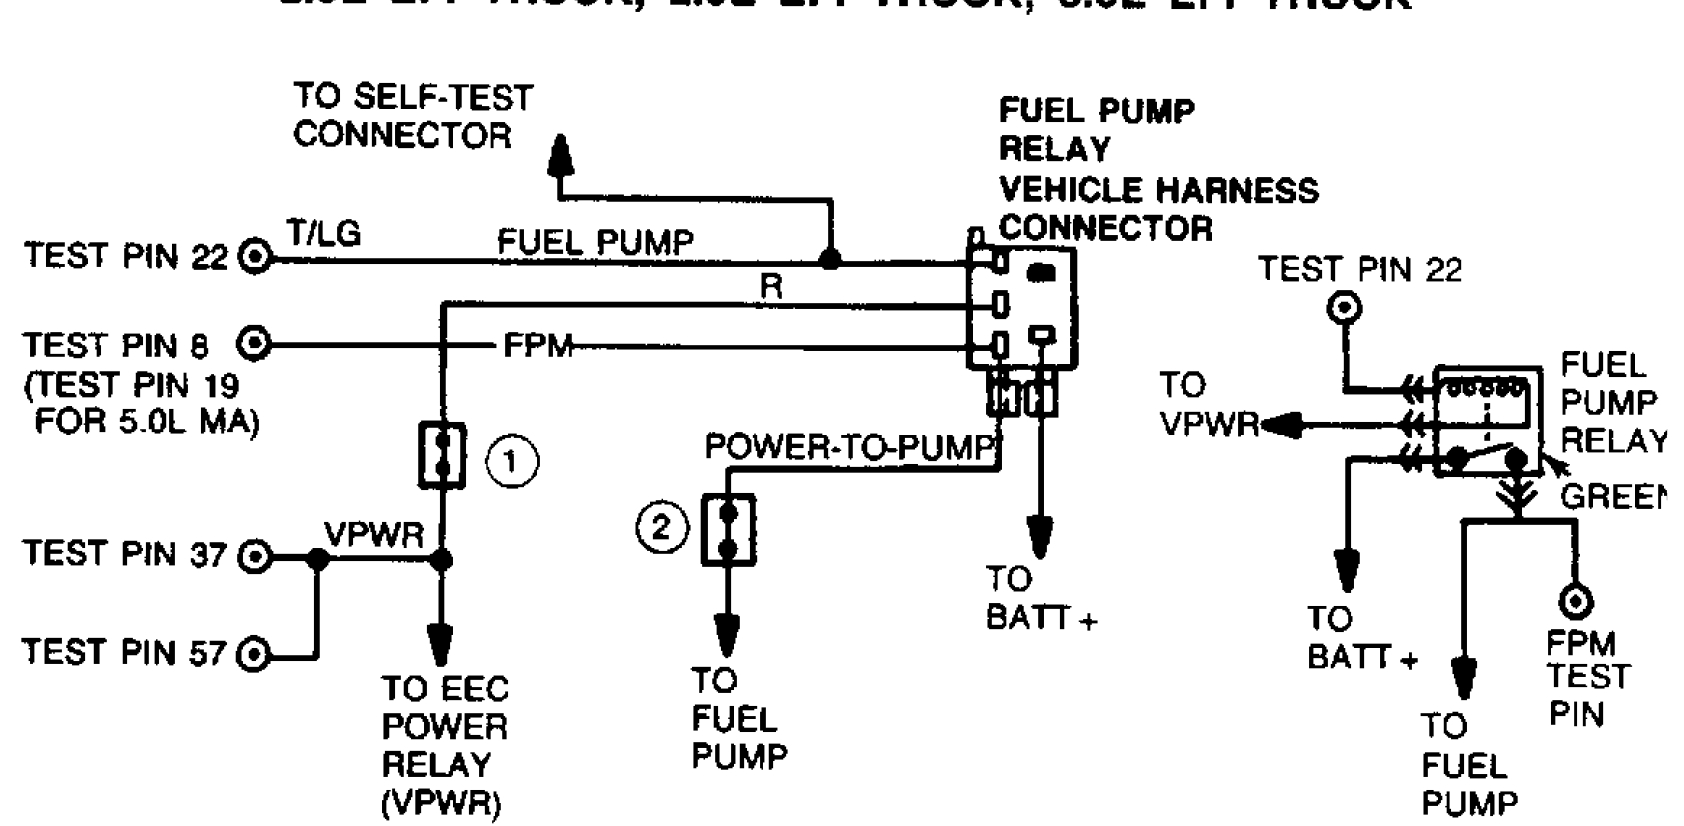 original eec iv wiring diagram eec iv bracket \u2022 free wiring diagrams life 1986 ford f250 fuel pump wiring diagram at alyssarenee.co